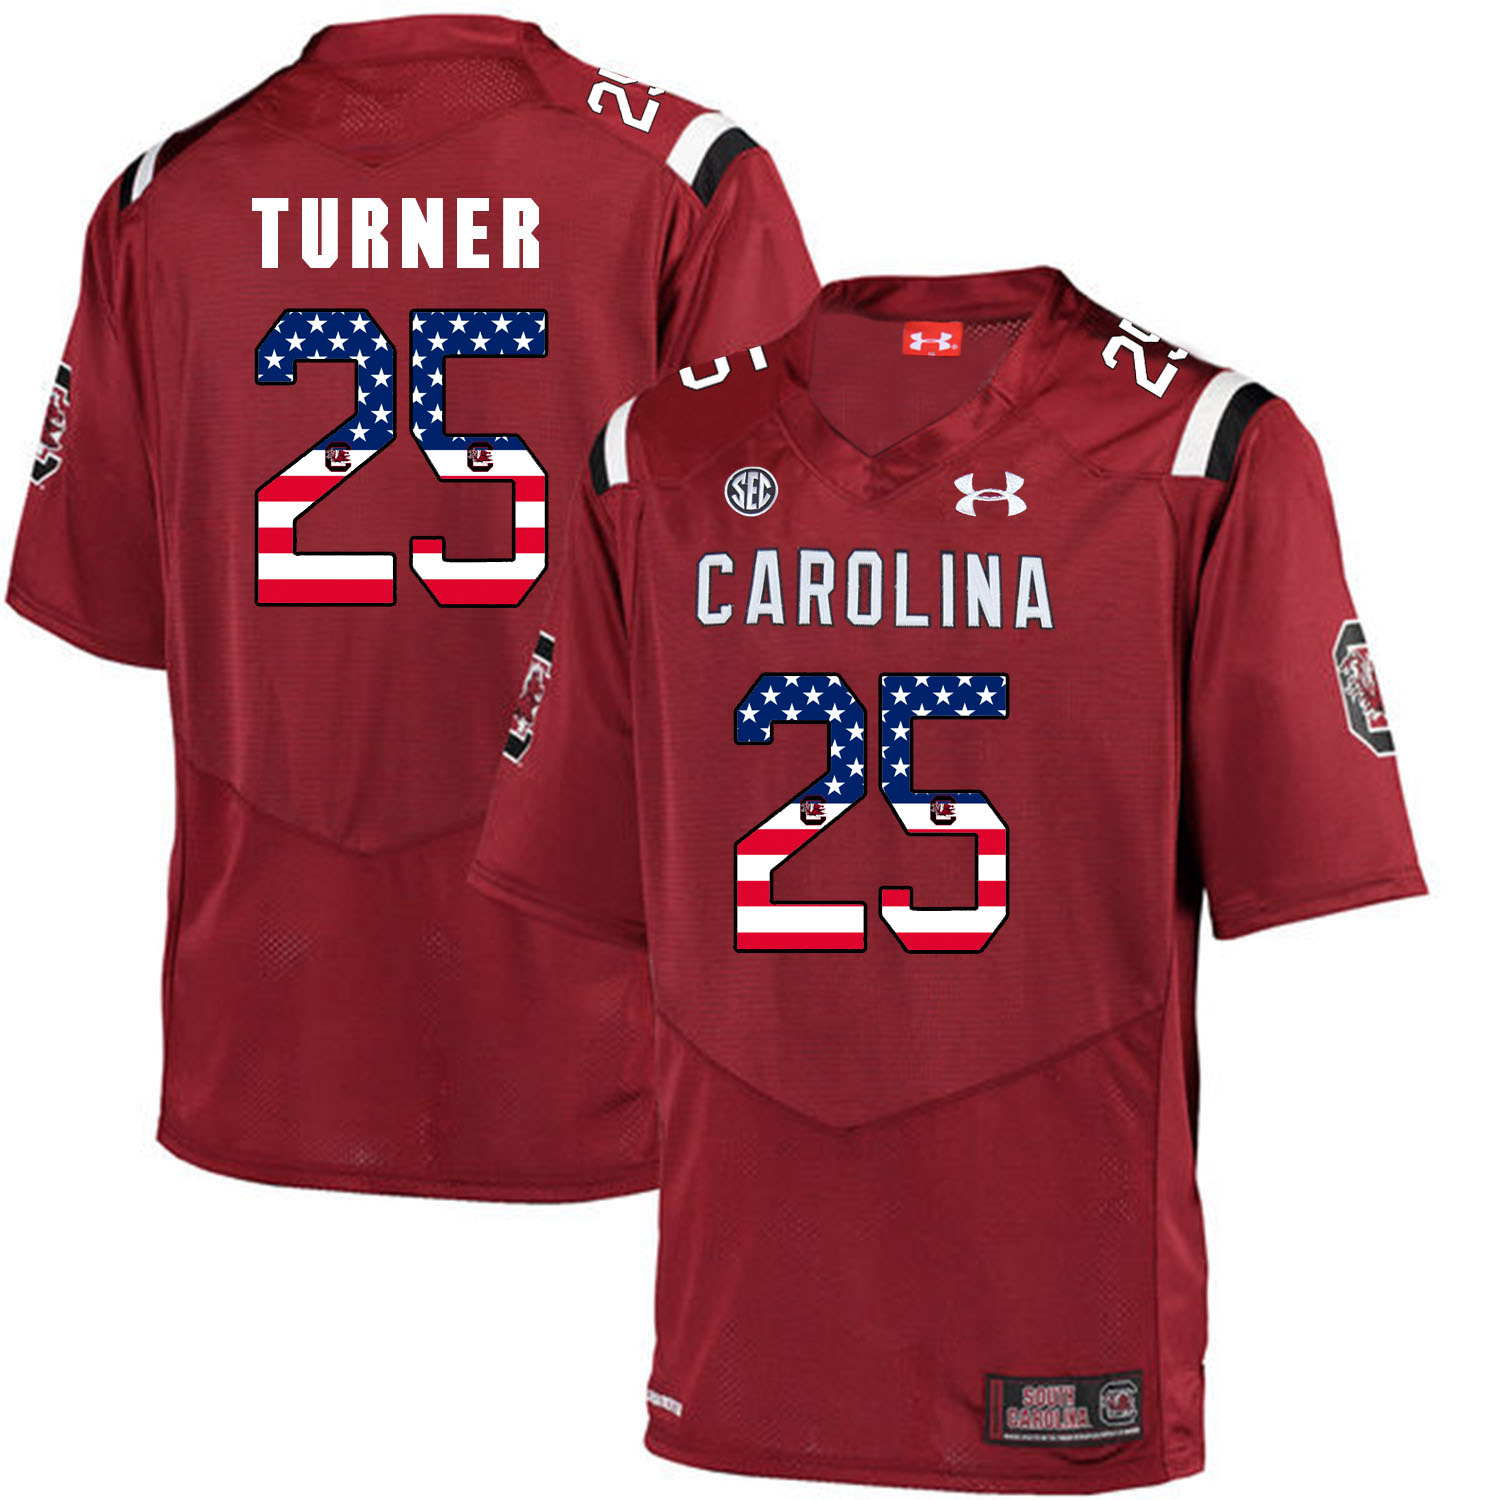 South Carolina Gamecocks 25 A.J. Turner Red USA Flag College Football Jersey